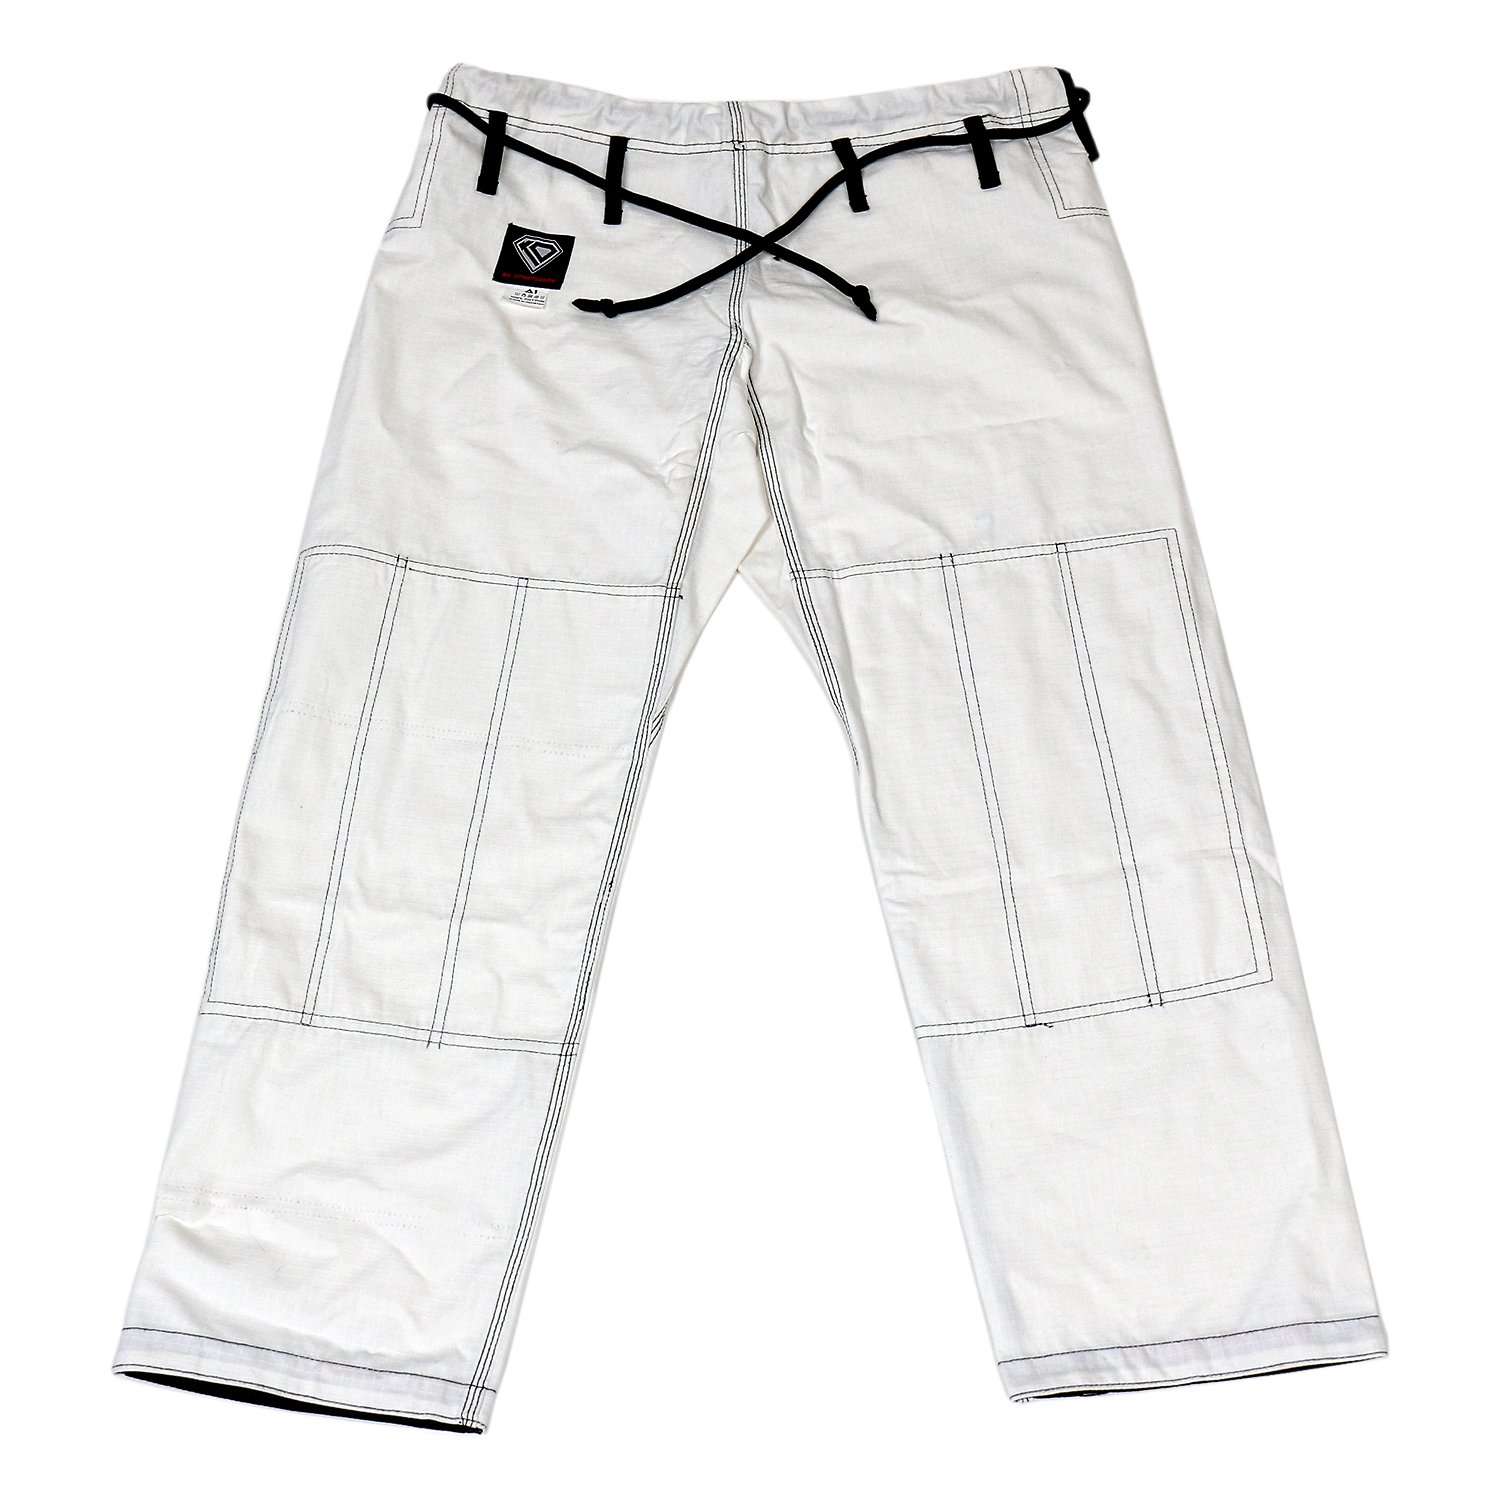 KO Sports Gear's White Gi Pants - Rip Stop - For Jiu Jitsu (A4) by KO Sports Gear